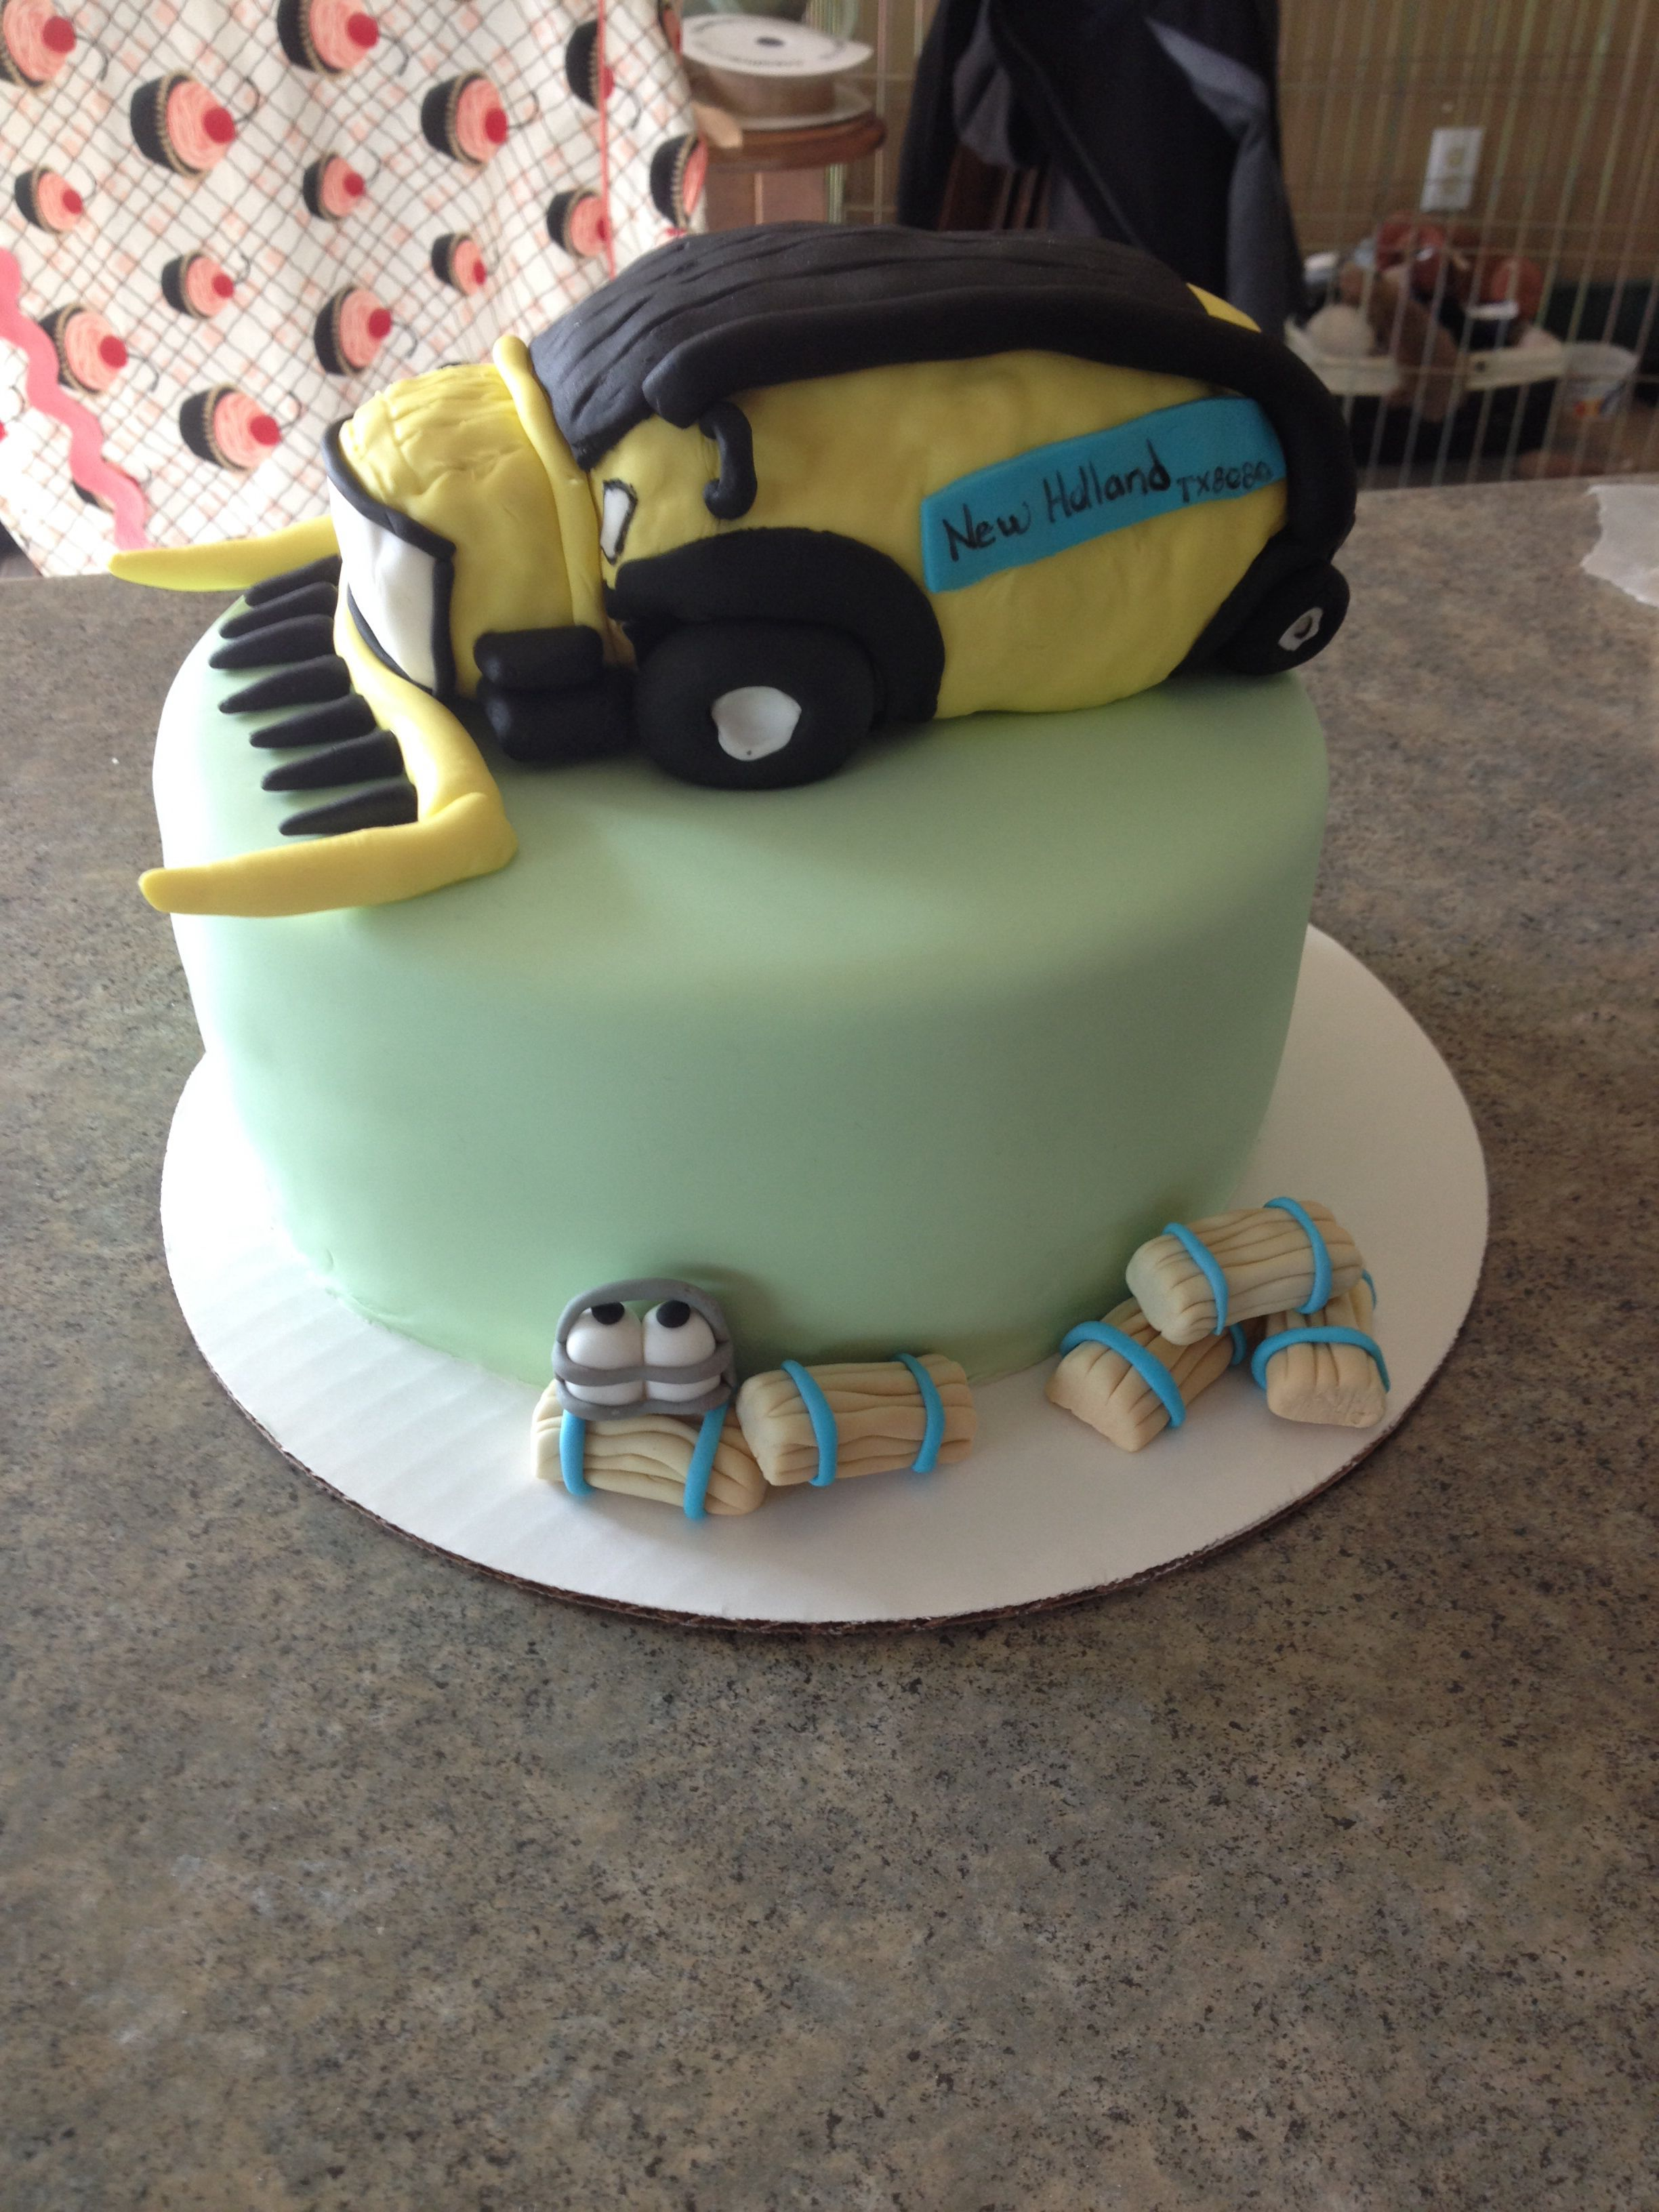 New holland combine cake